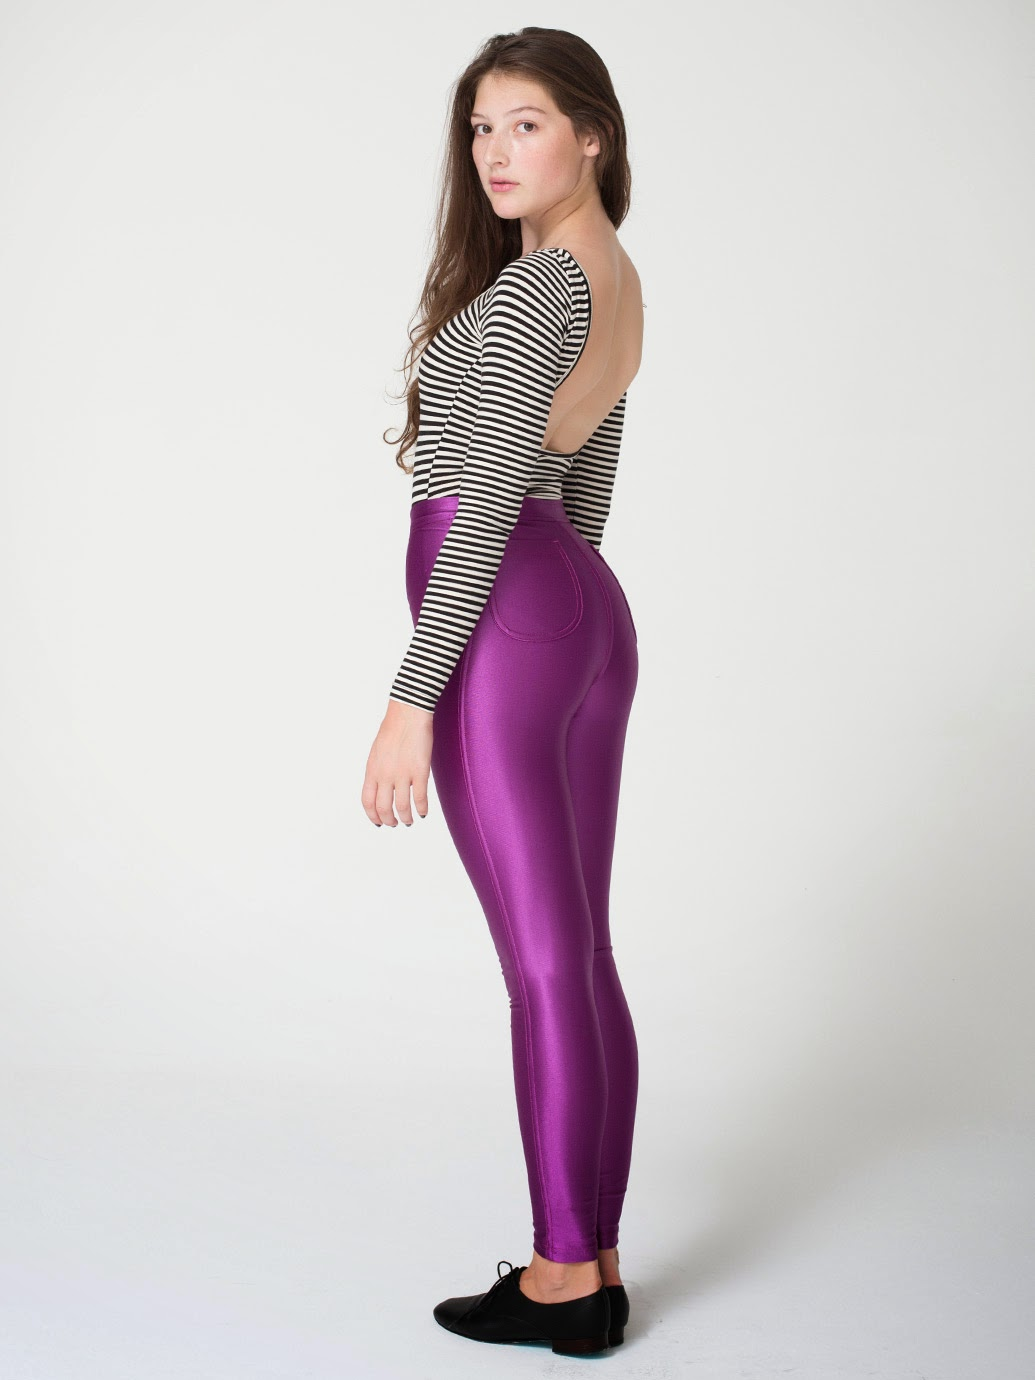 Fabulous Shiny Spandex Leggings For Girls  Fashionate Trends-3293